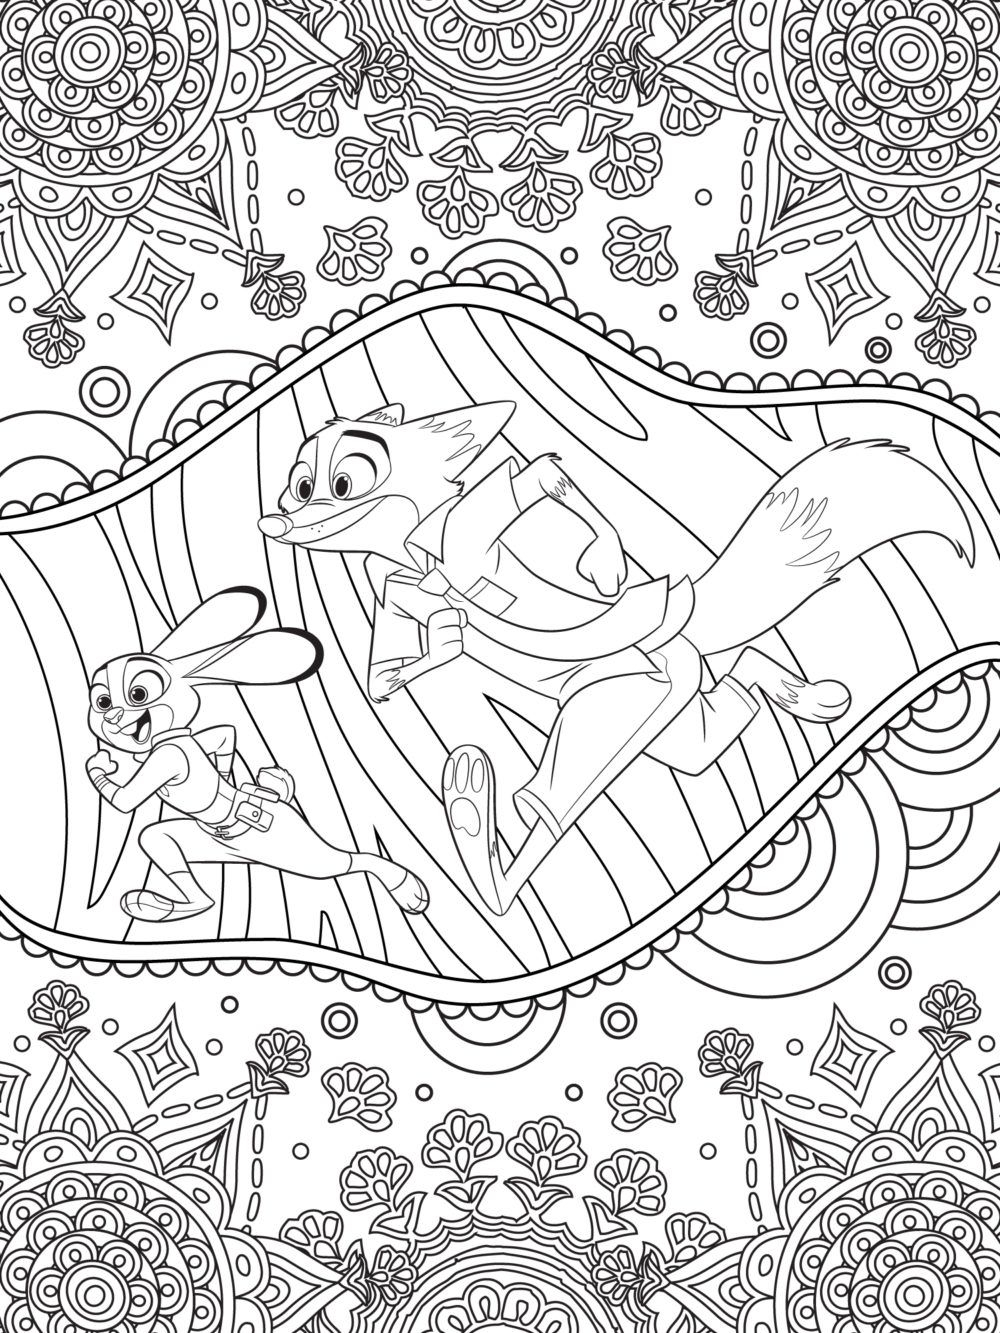 Lady and the Tramp Coloring Pages  Download 3c - Save it to your computer